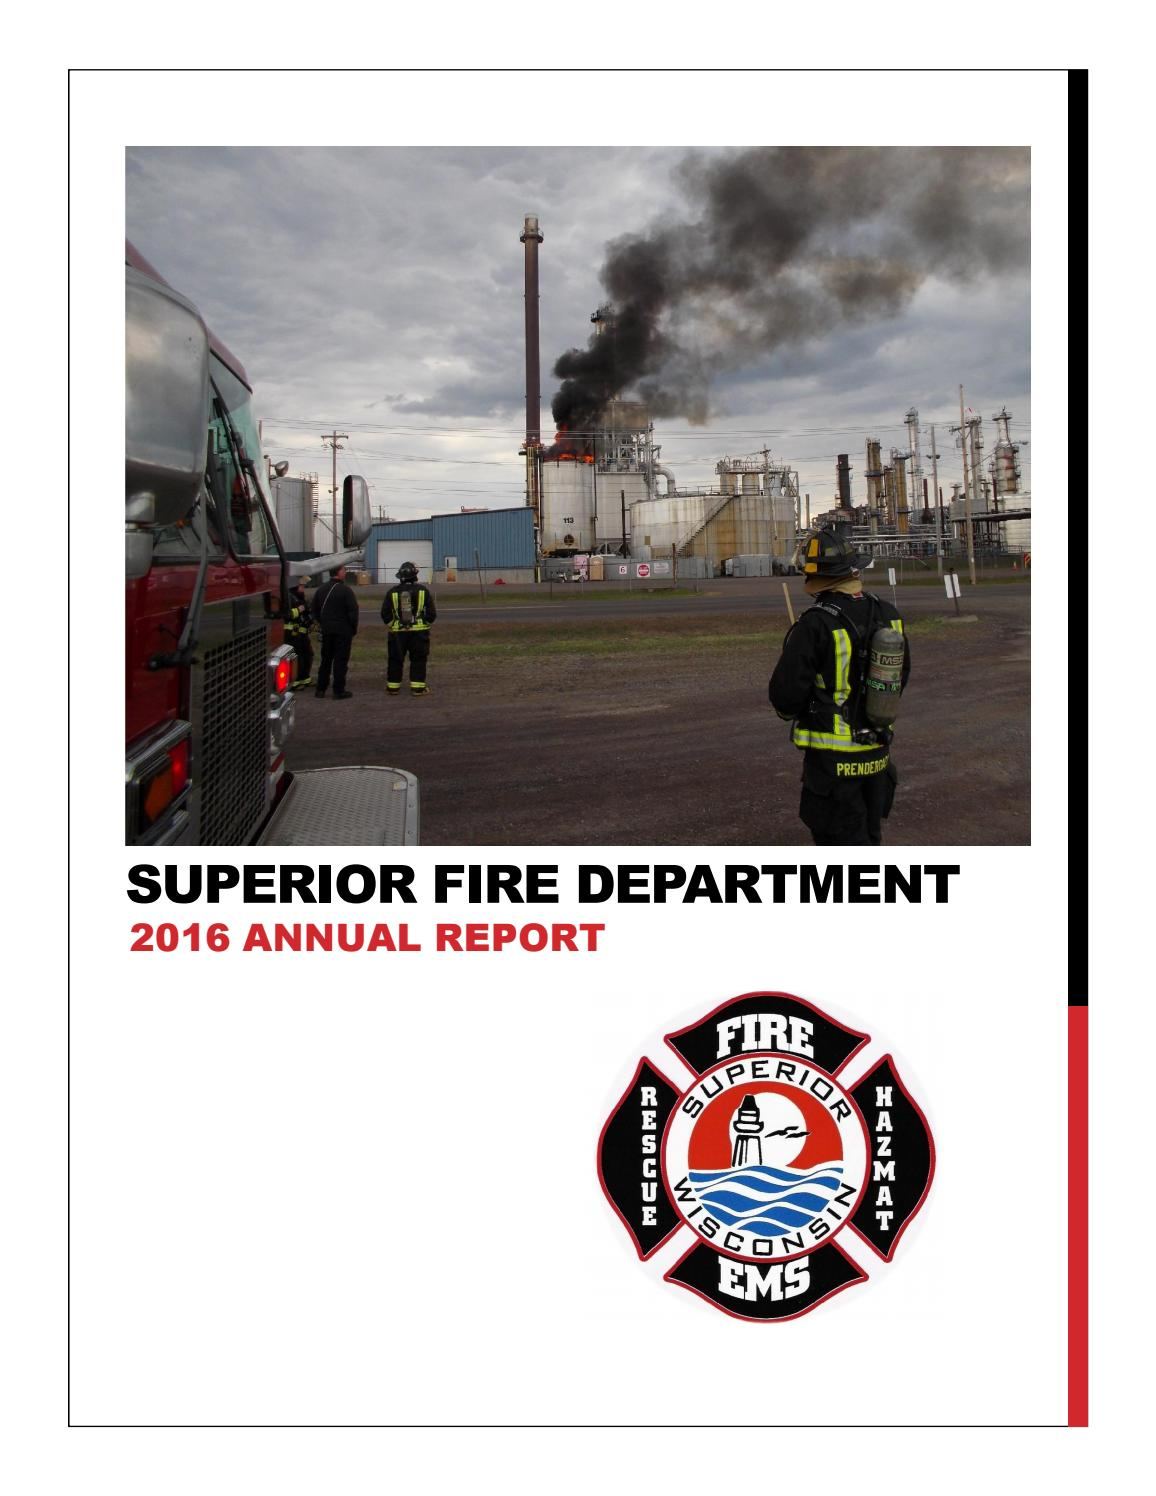 Superior Fire Department 2016 Annual Report by hegstromp@ci.superior.wi.us  - issuu